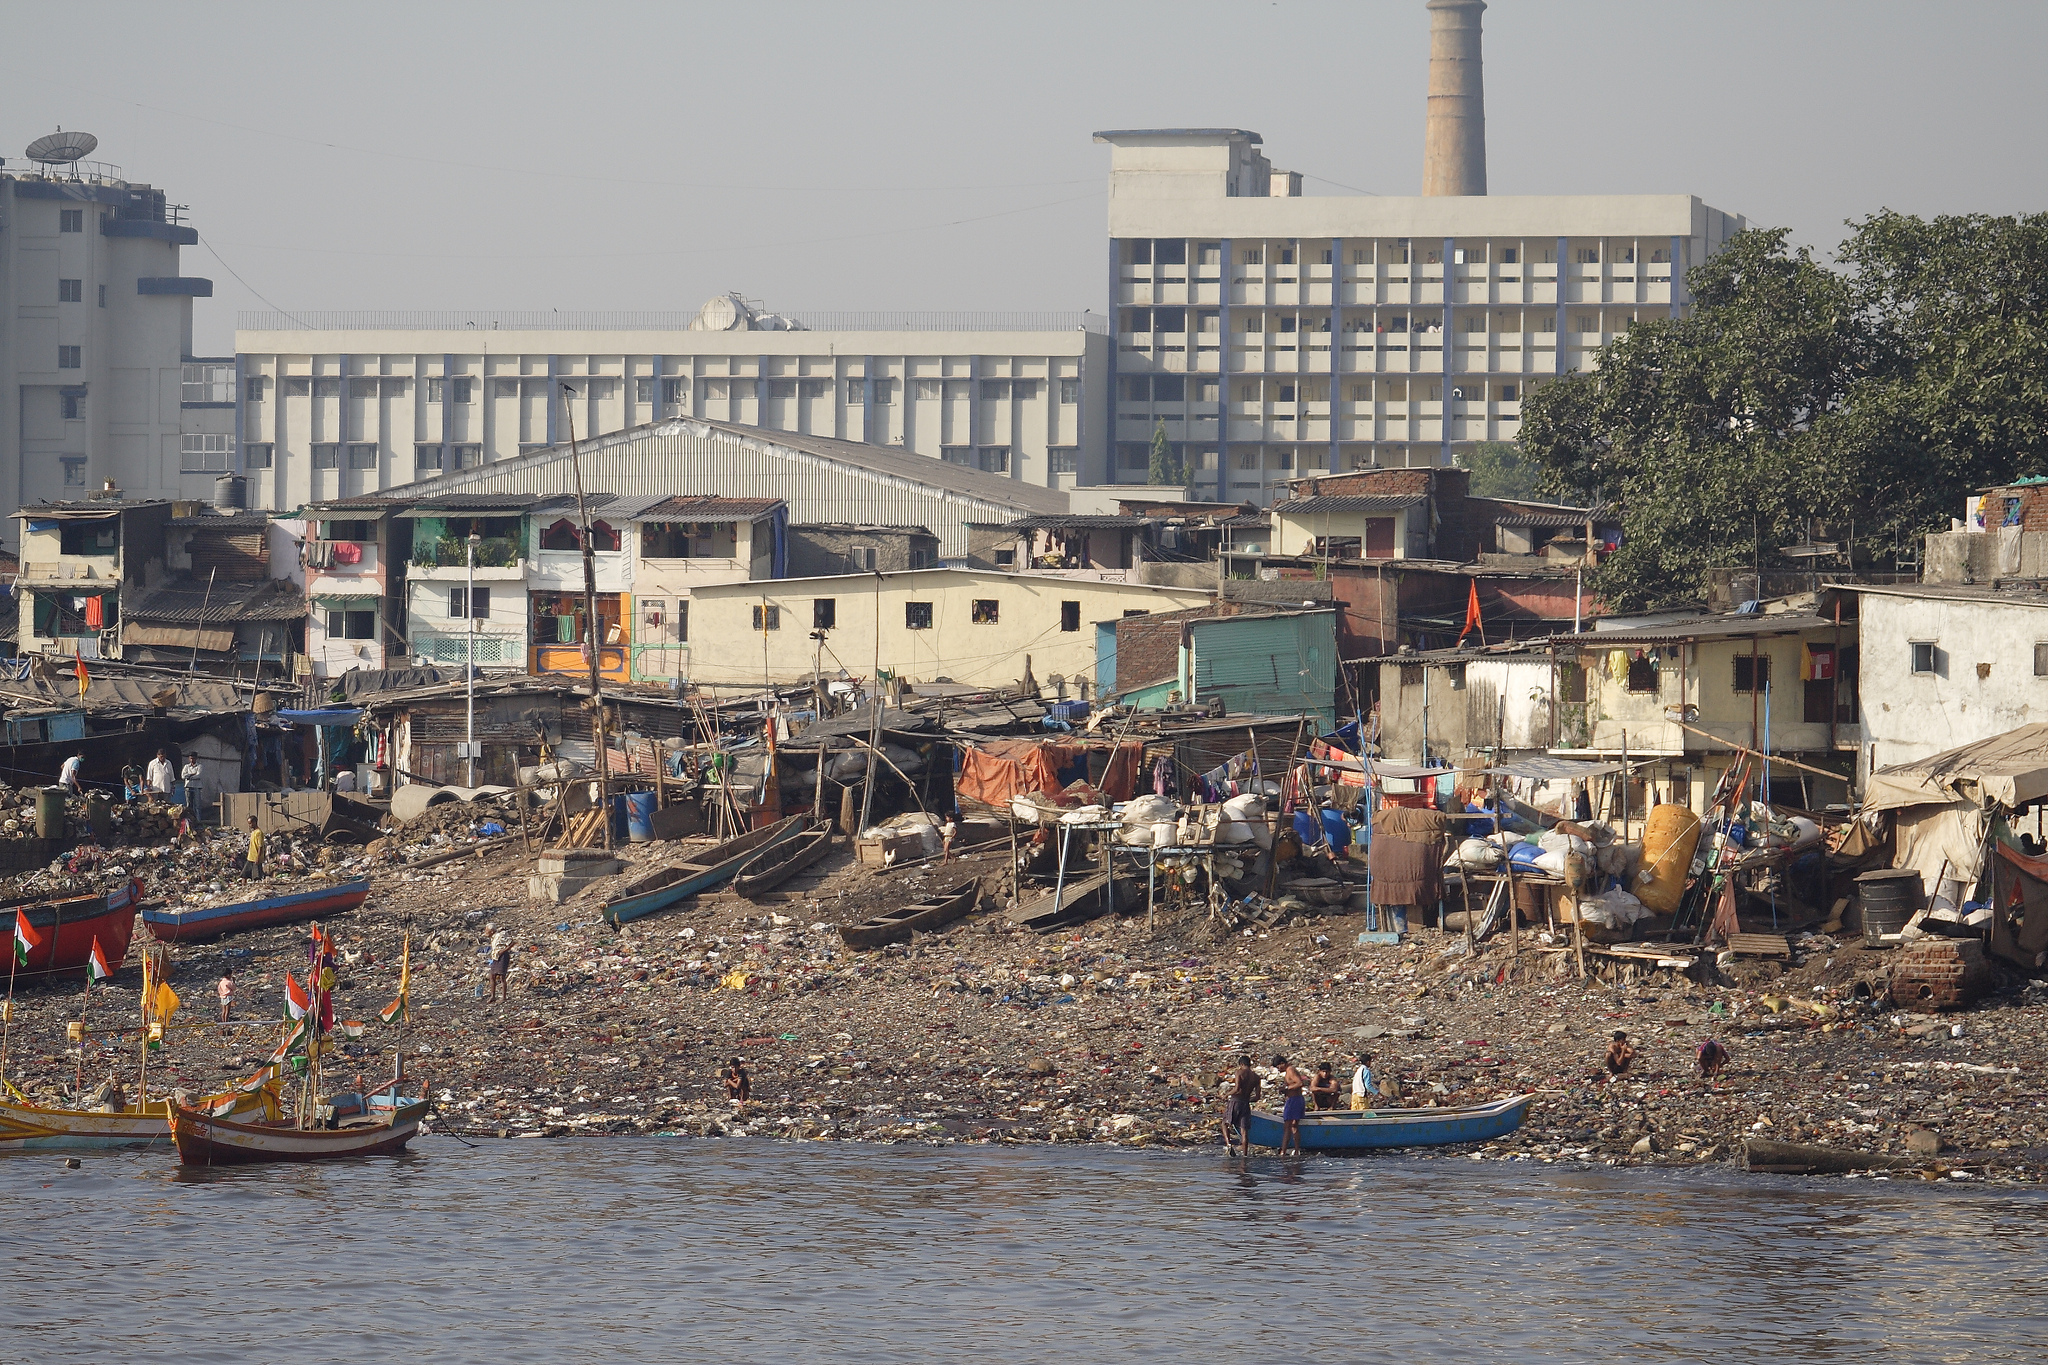 <p>Waterside homes in Mumbai. Flickr/Department of Foreign Affairs and Trade</p>